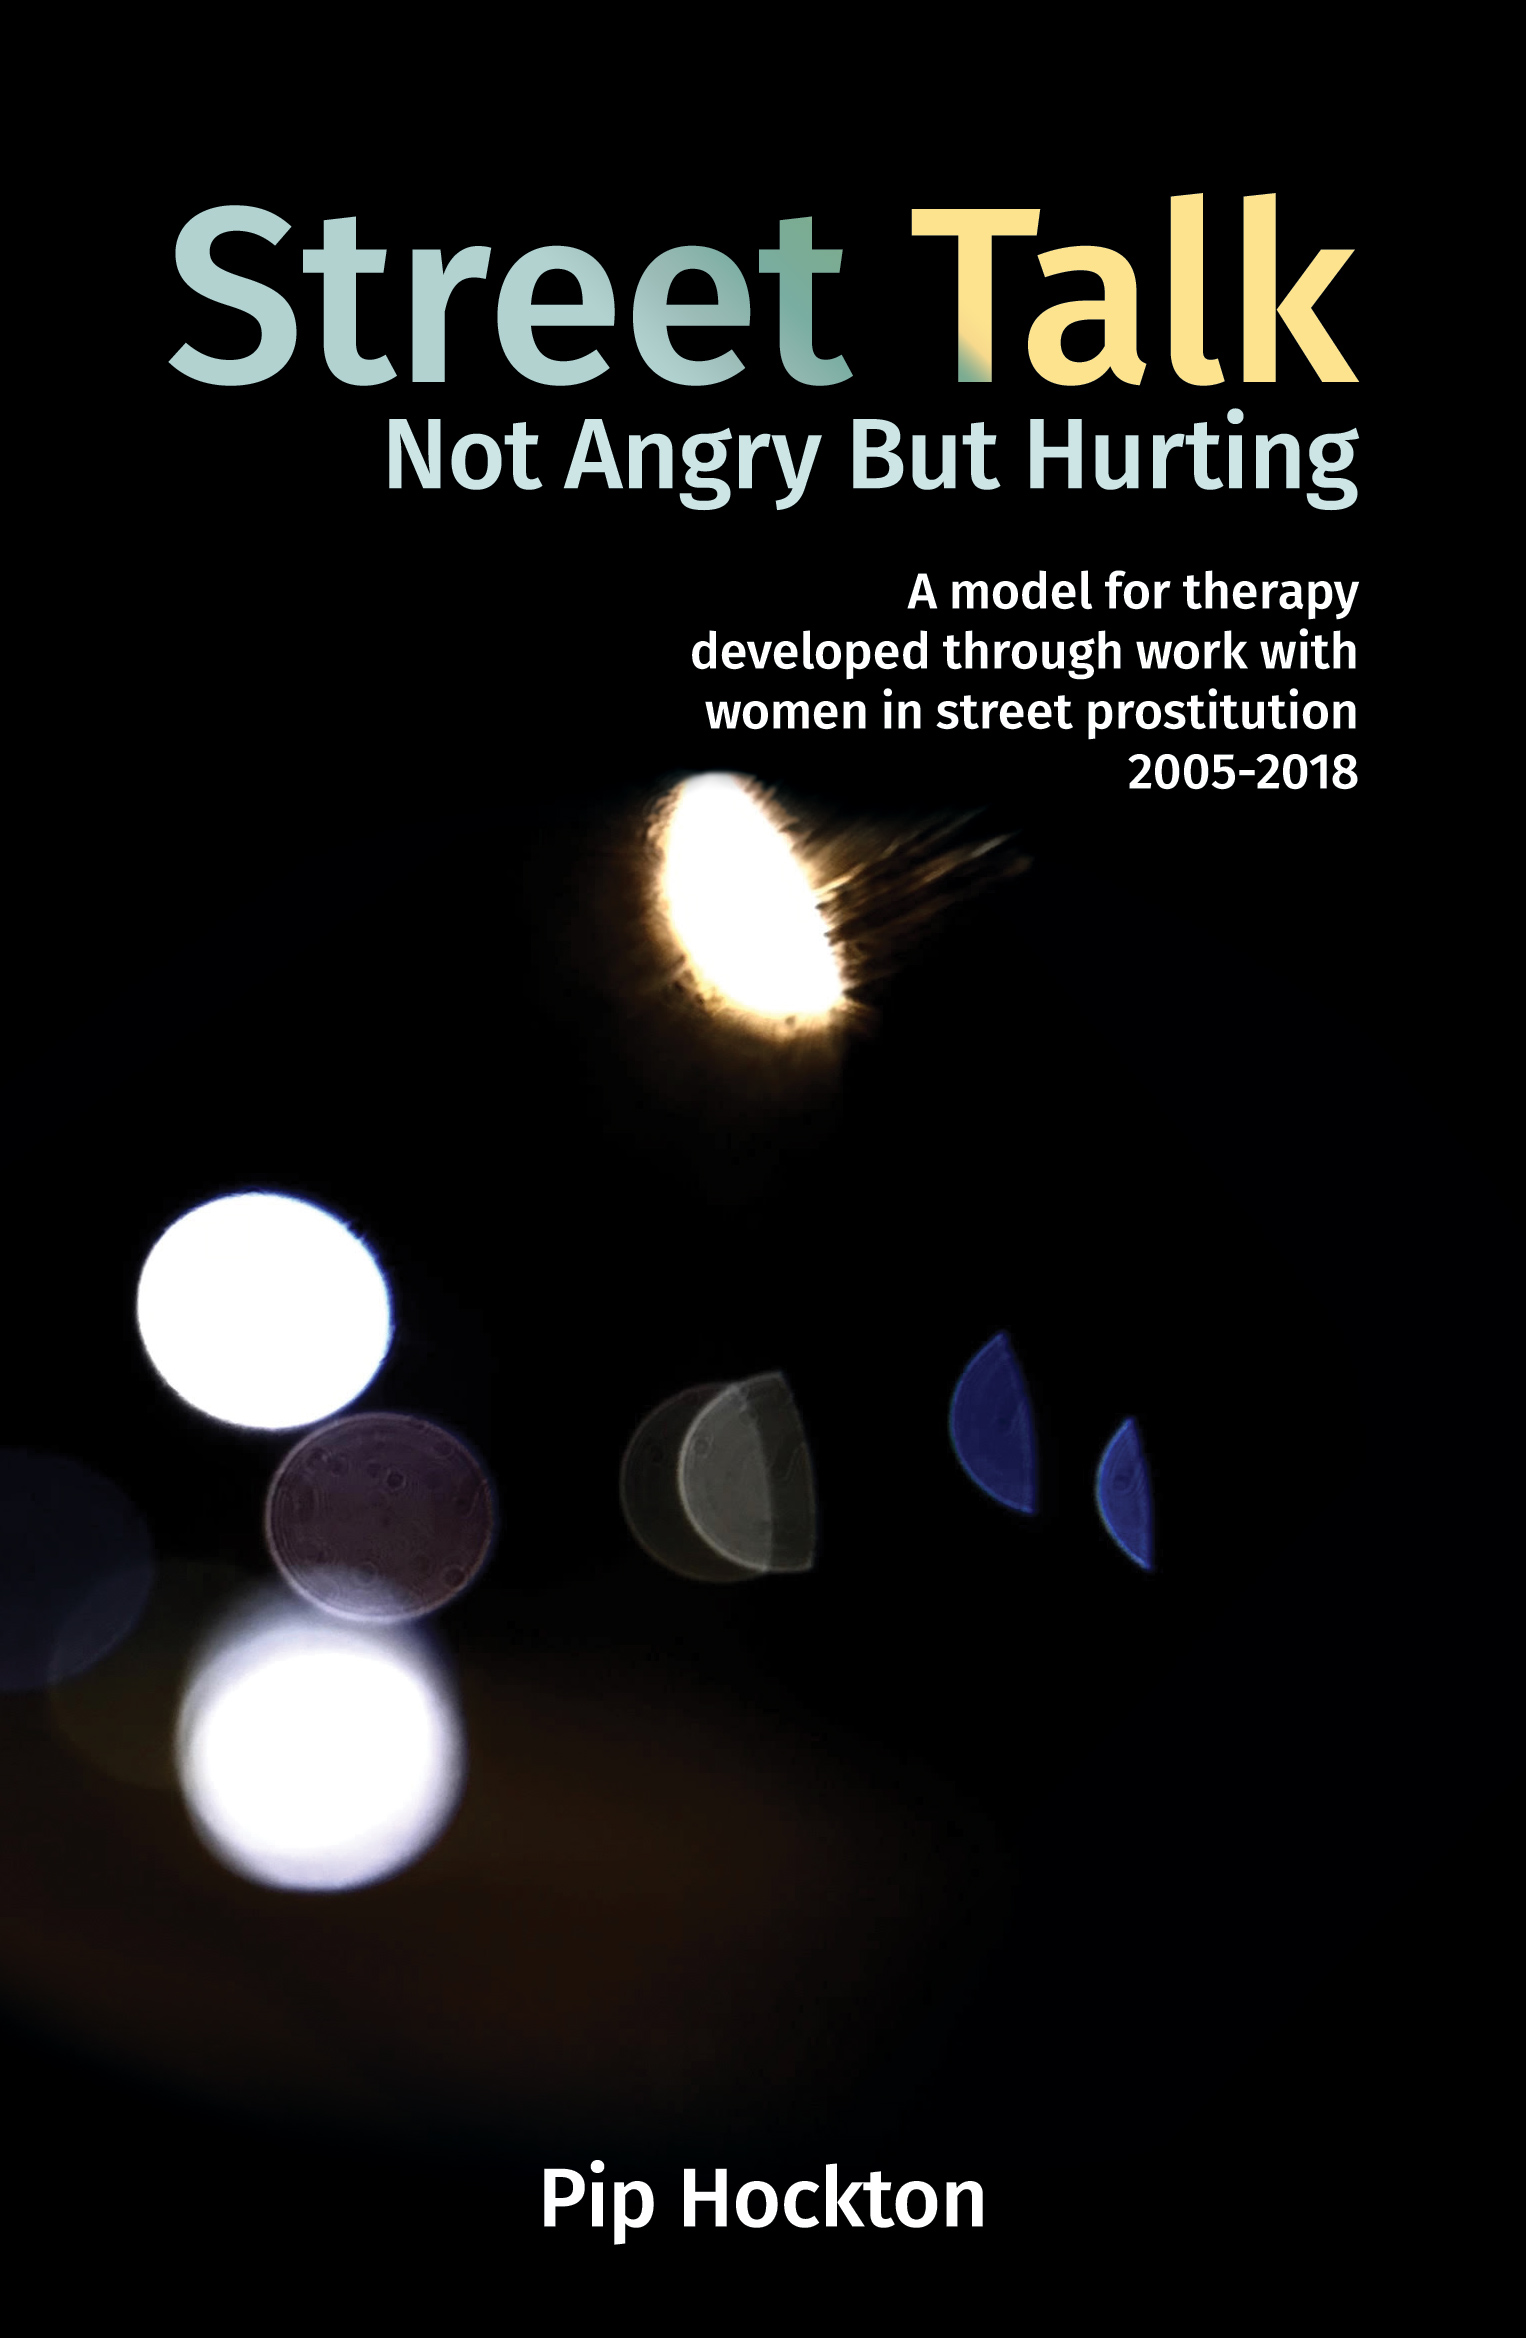 Street Talk: Not Angry, But Hurting